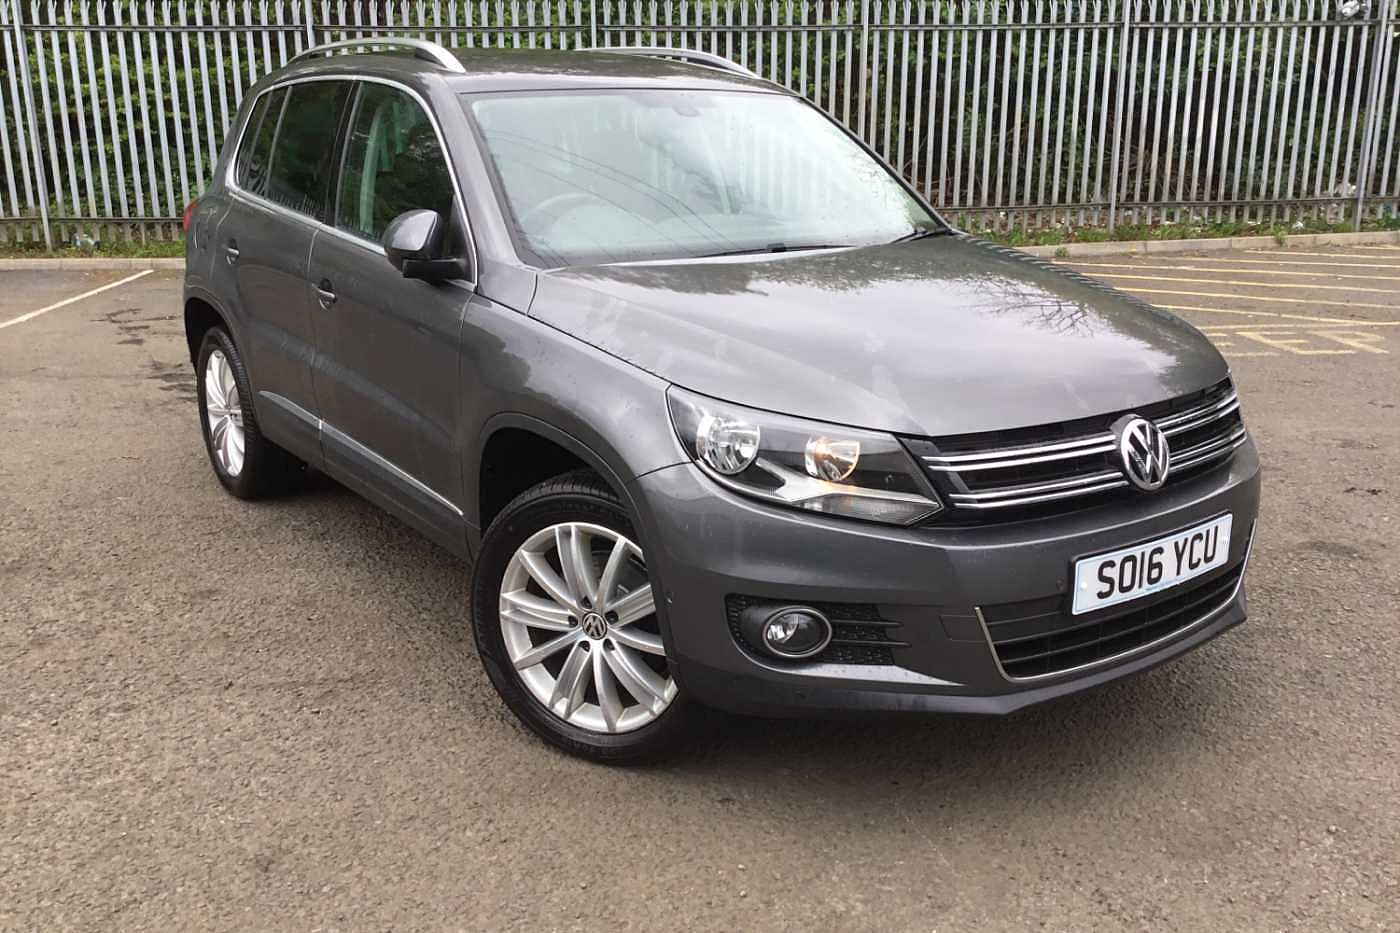 2016 Tiguan 2.0 TDI 150PS Match 4Motion SCR for Sale in Edinburgh